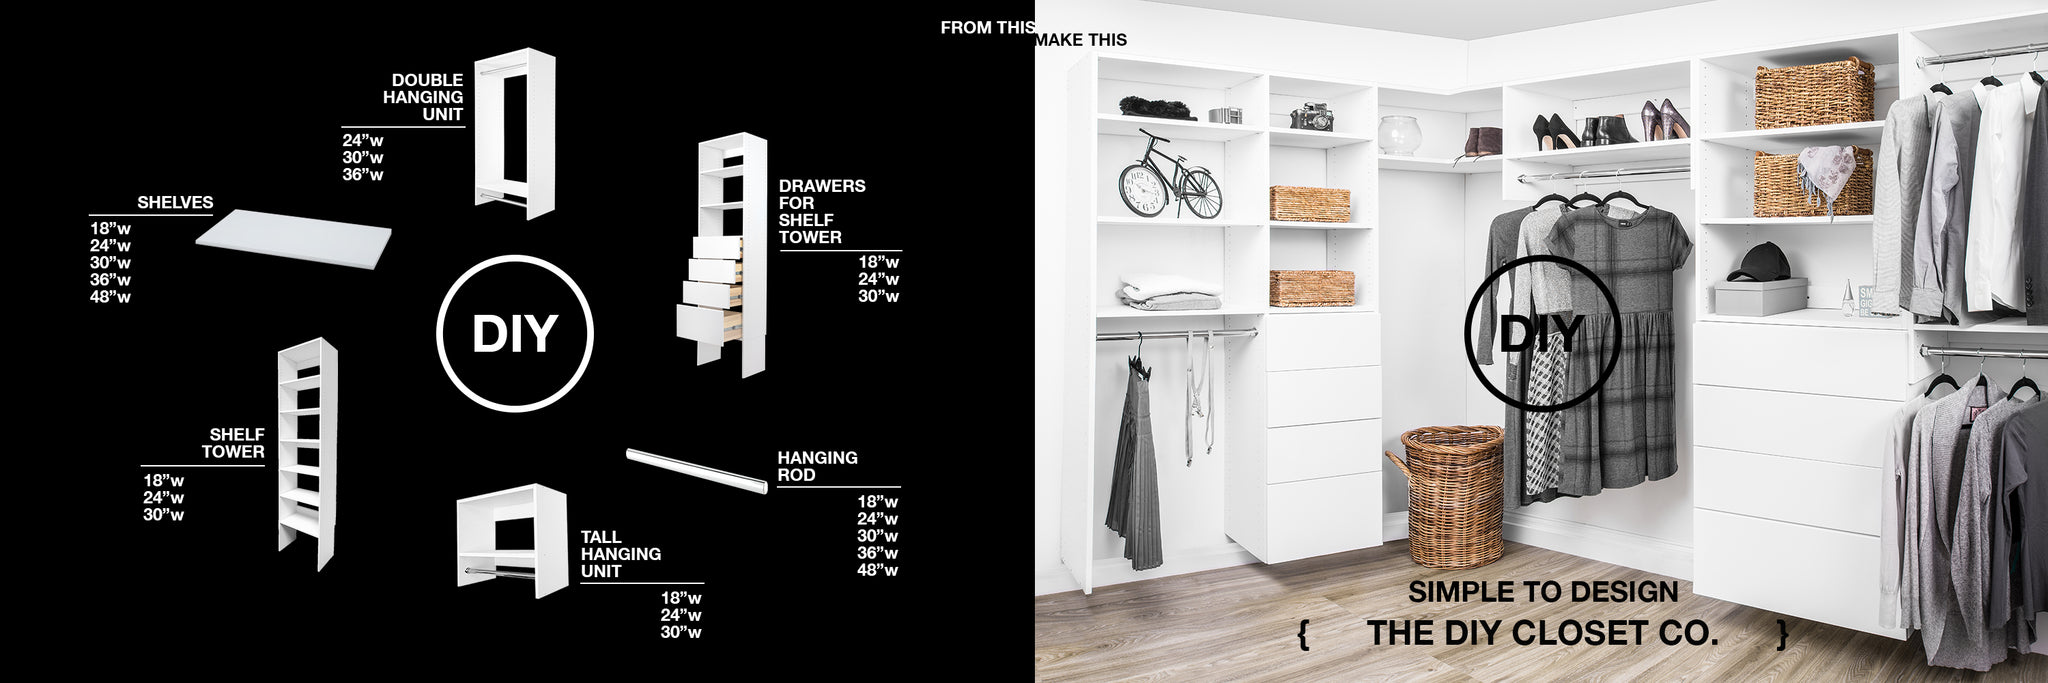 Modular Closets : The Do-It-Yourself Closet Company